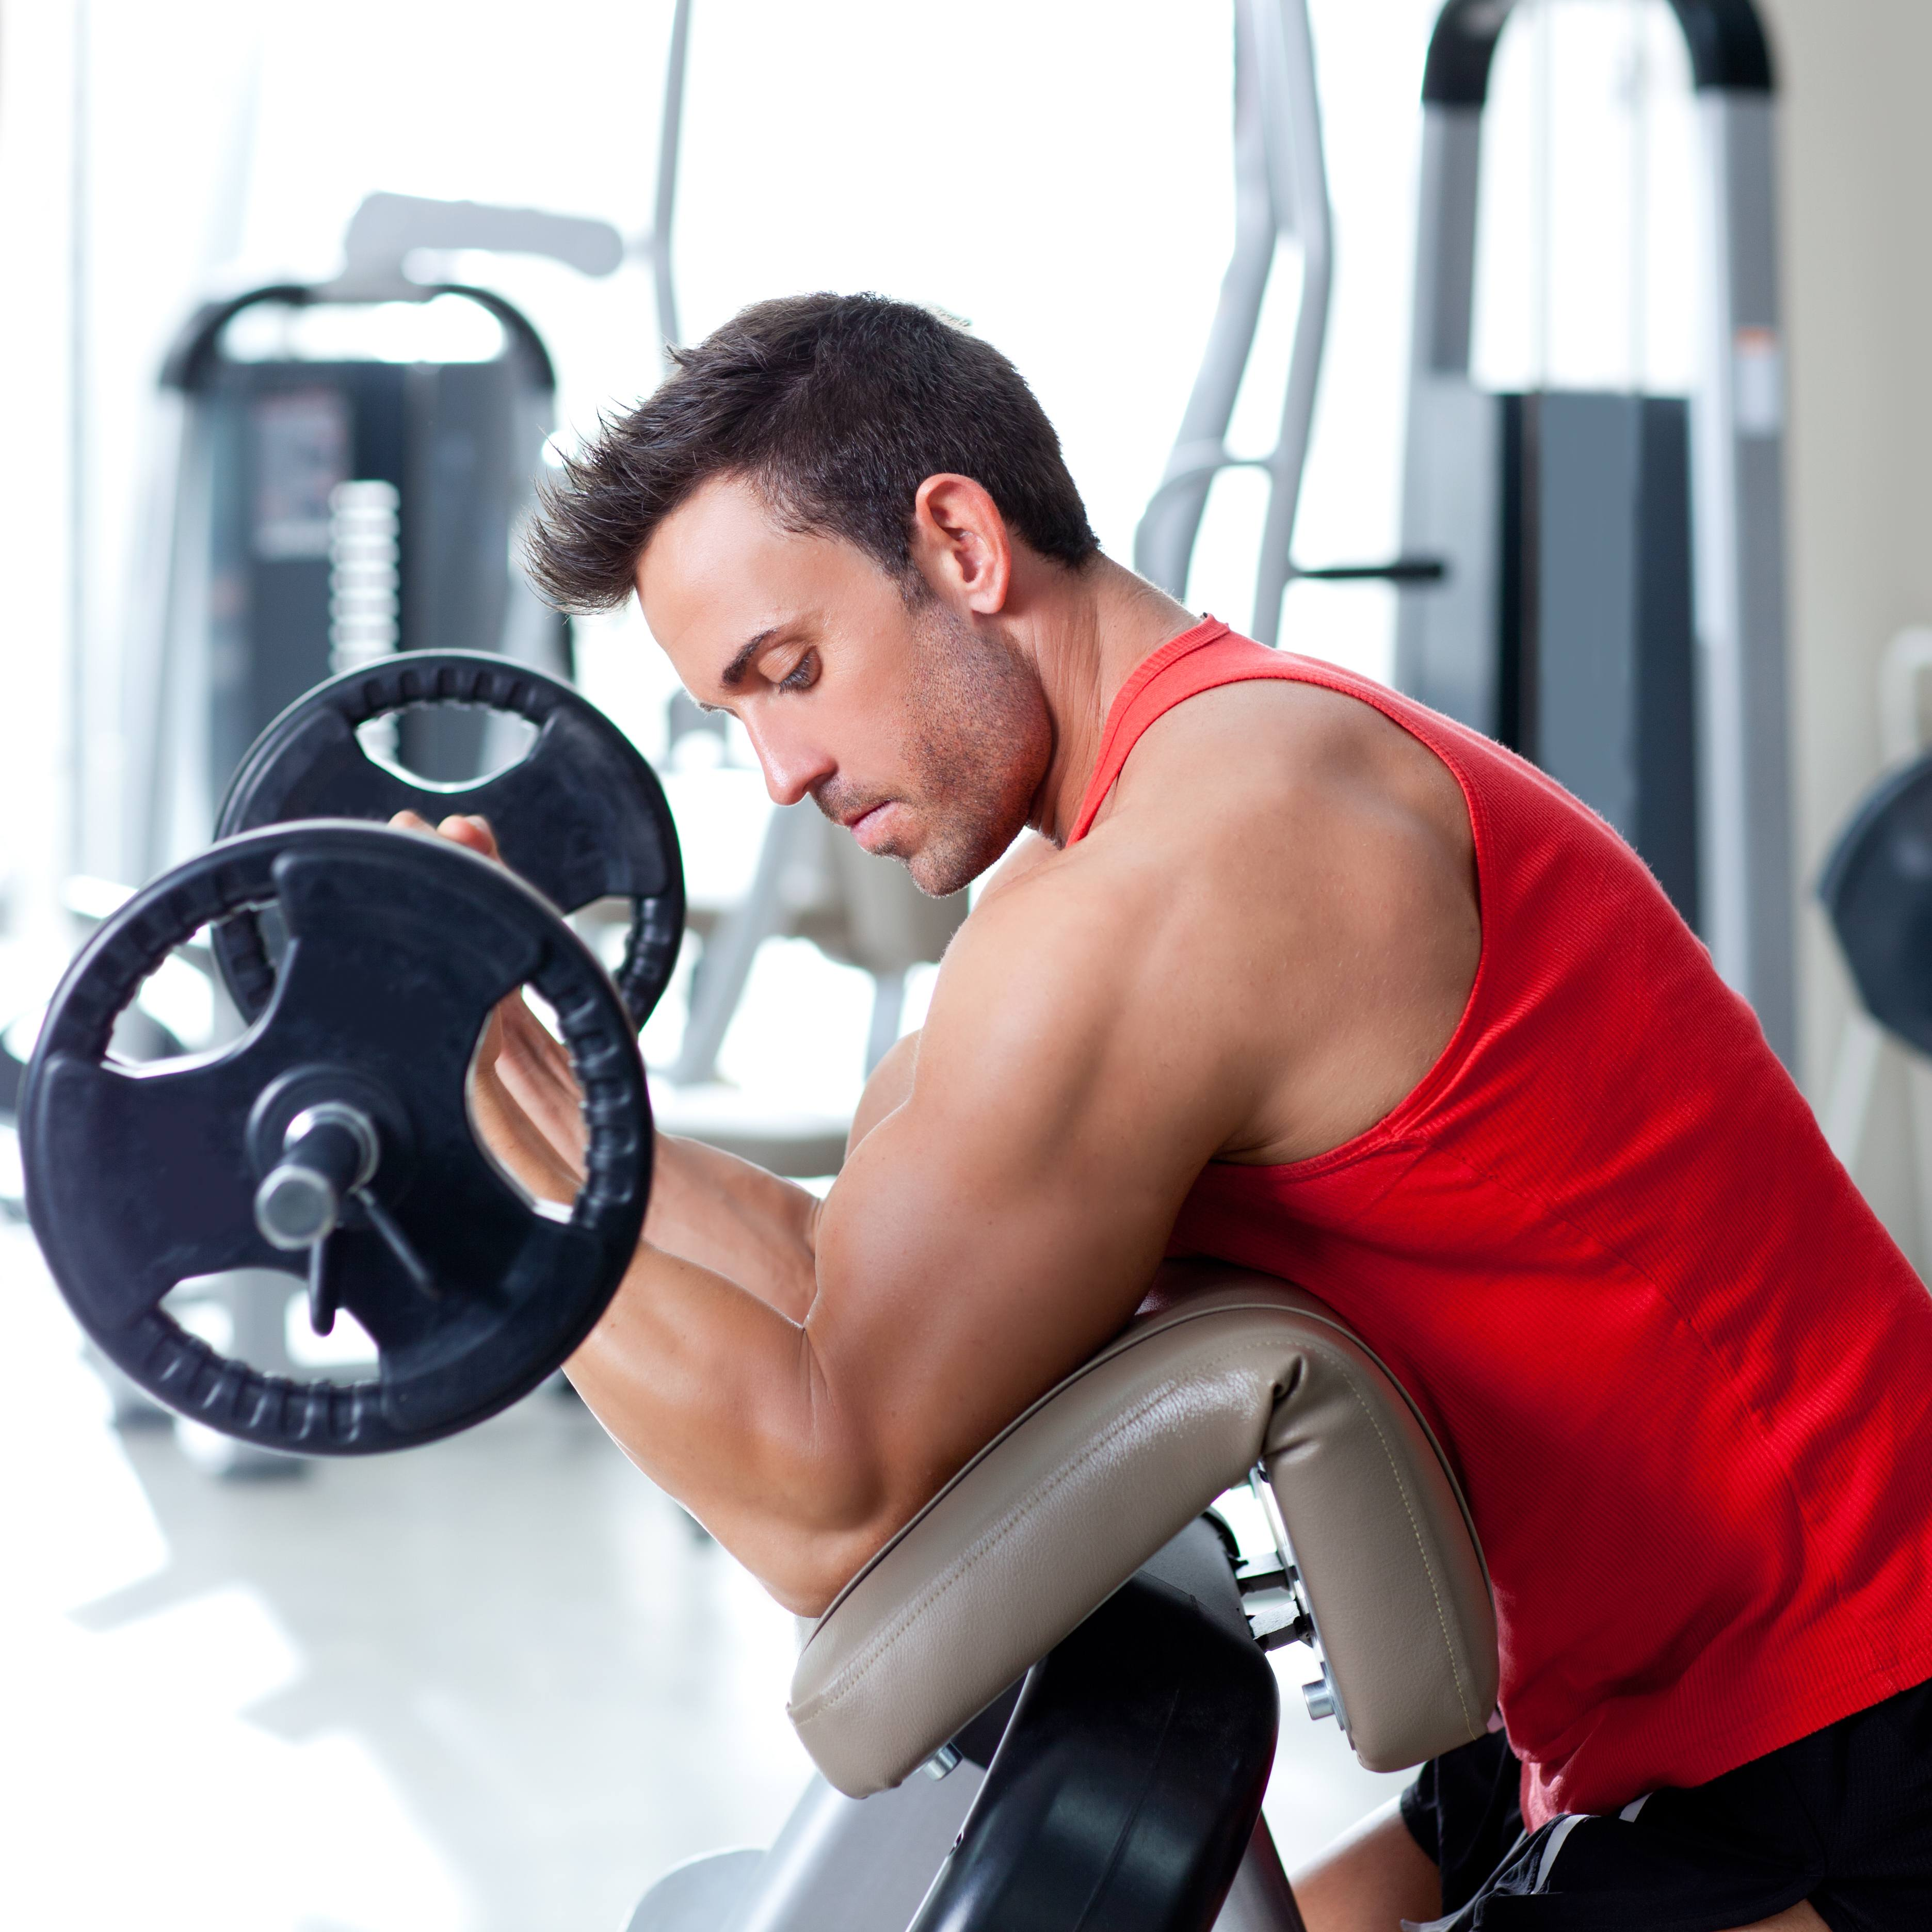 a young man using weight training equipment in a gym